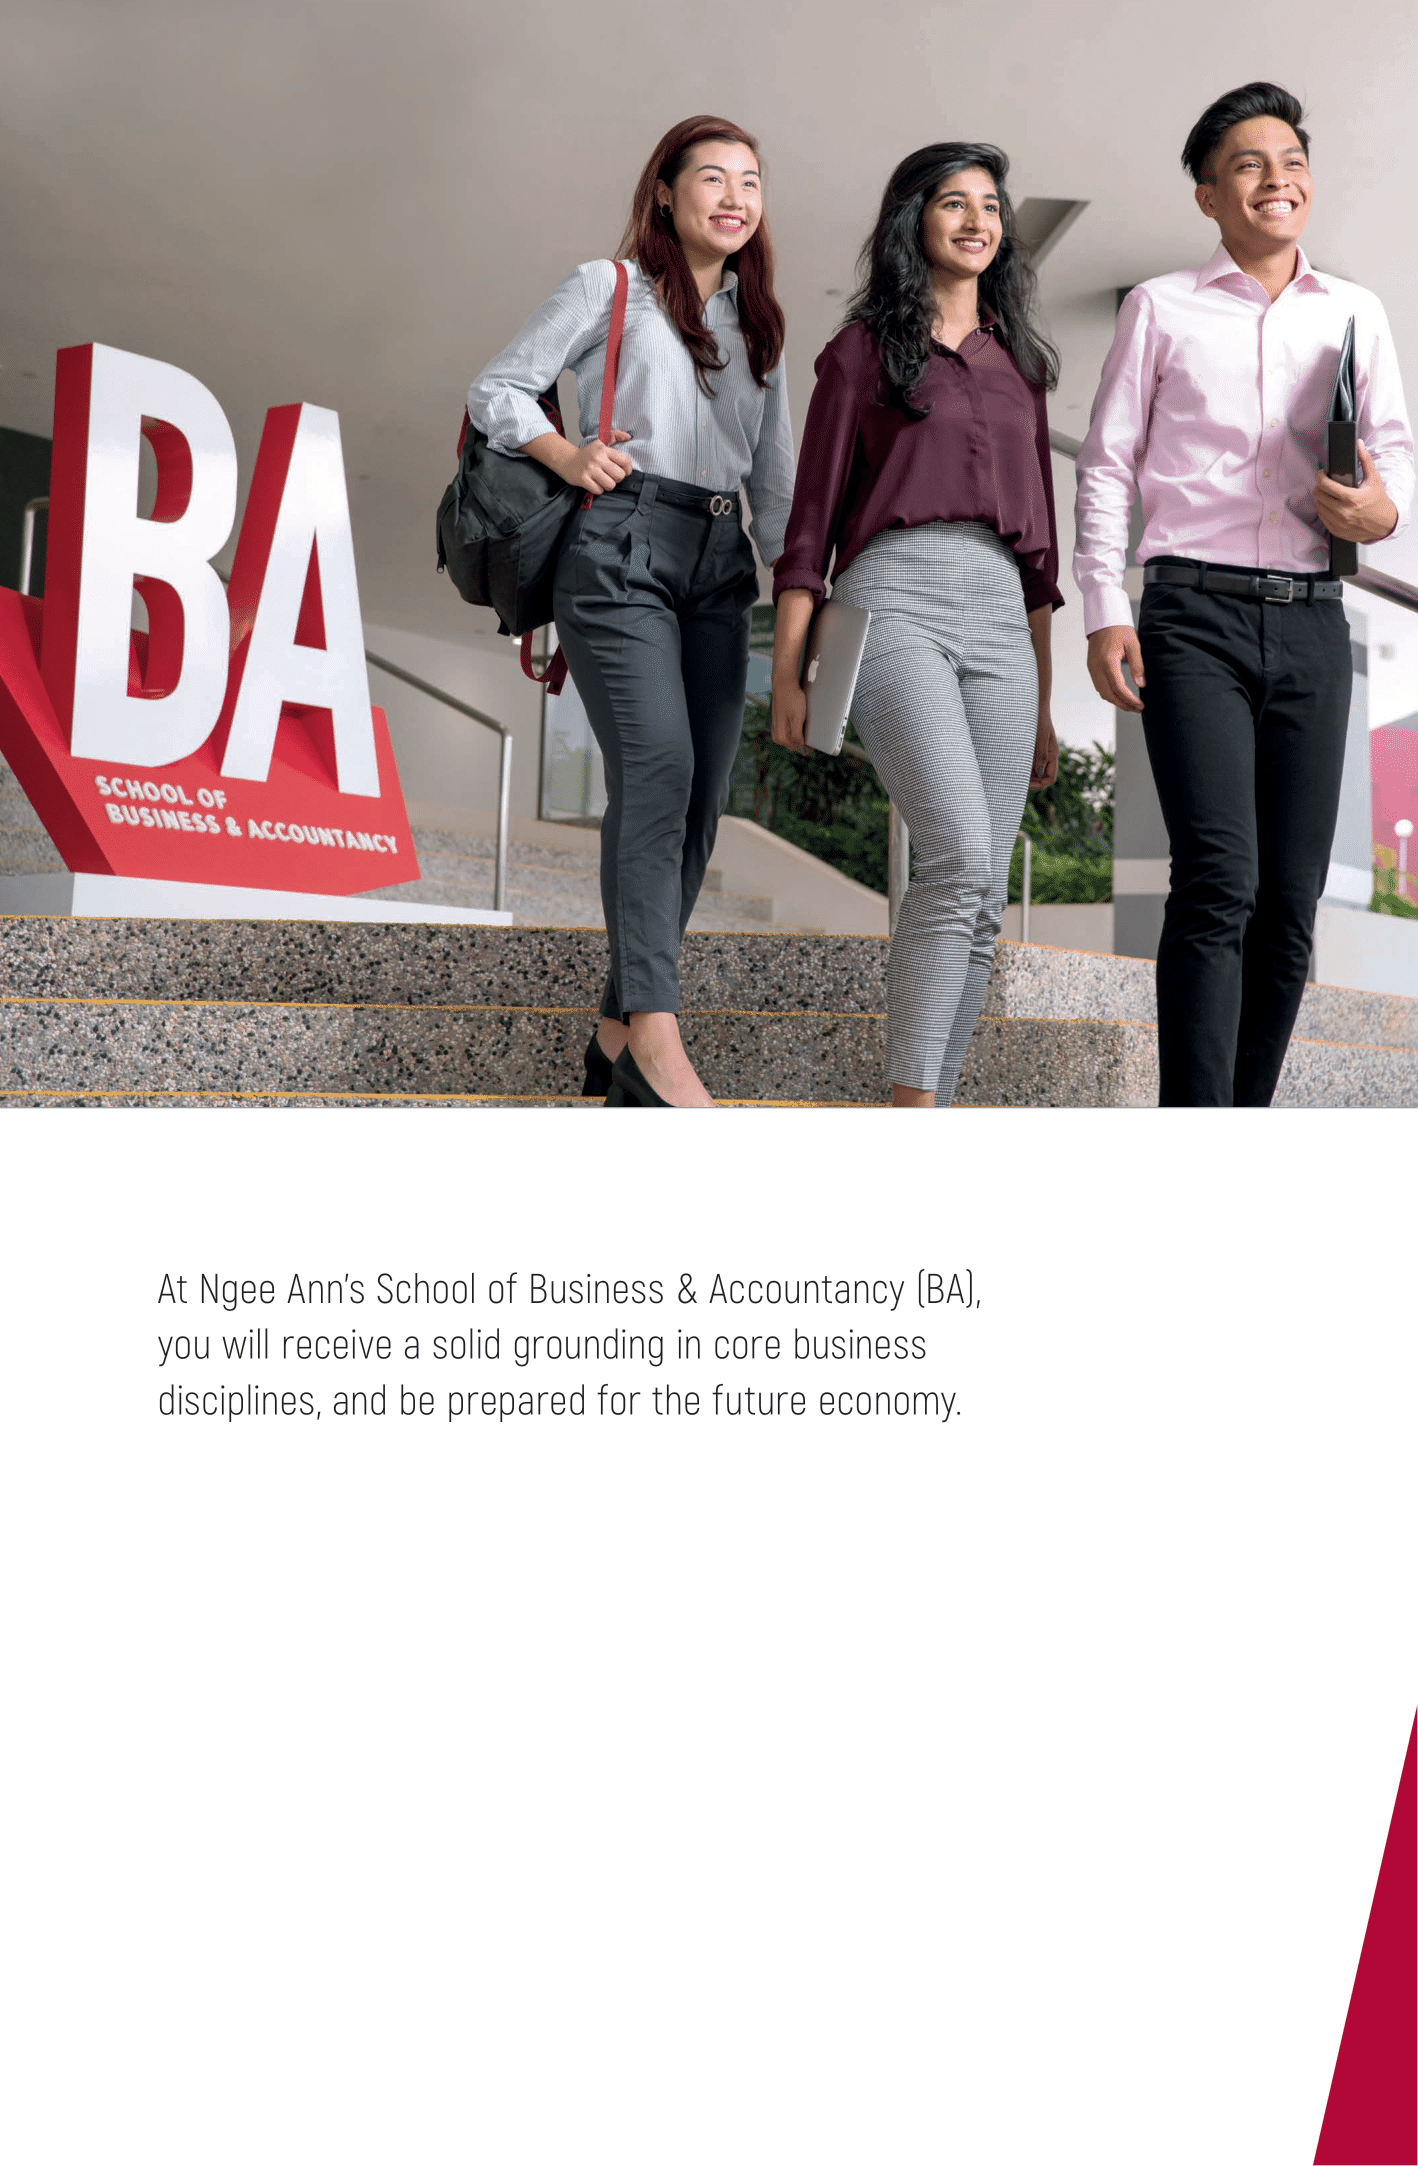 School of Business and Accountancy 2020-03